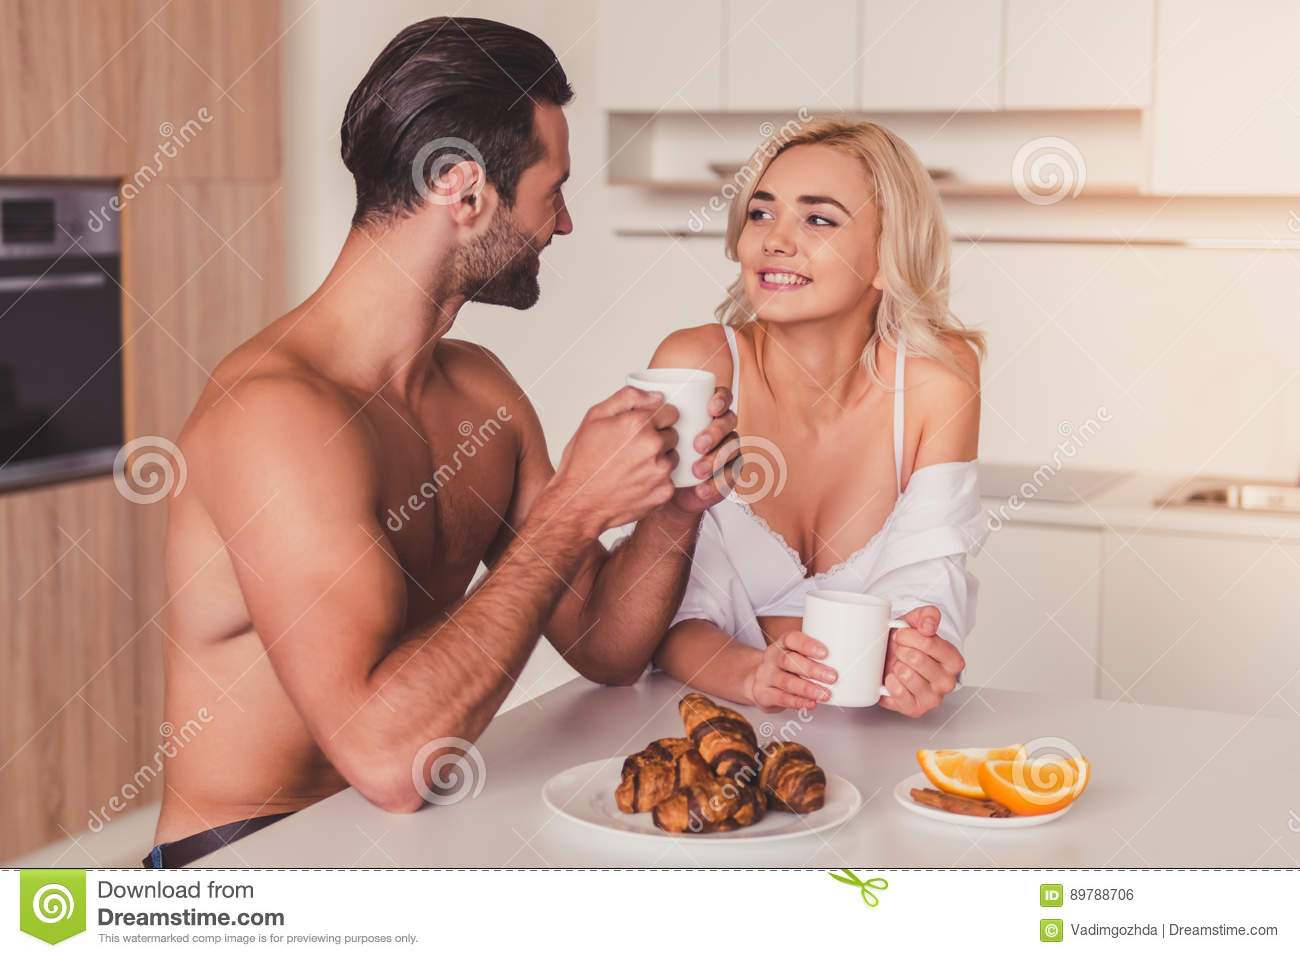 naked couple in the kitchen